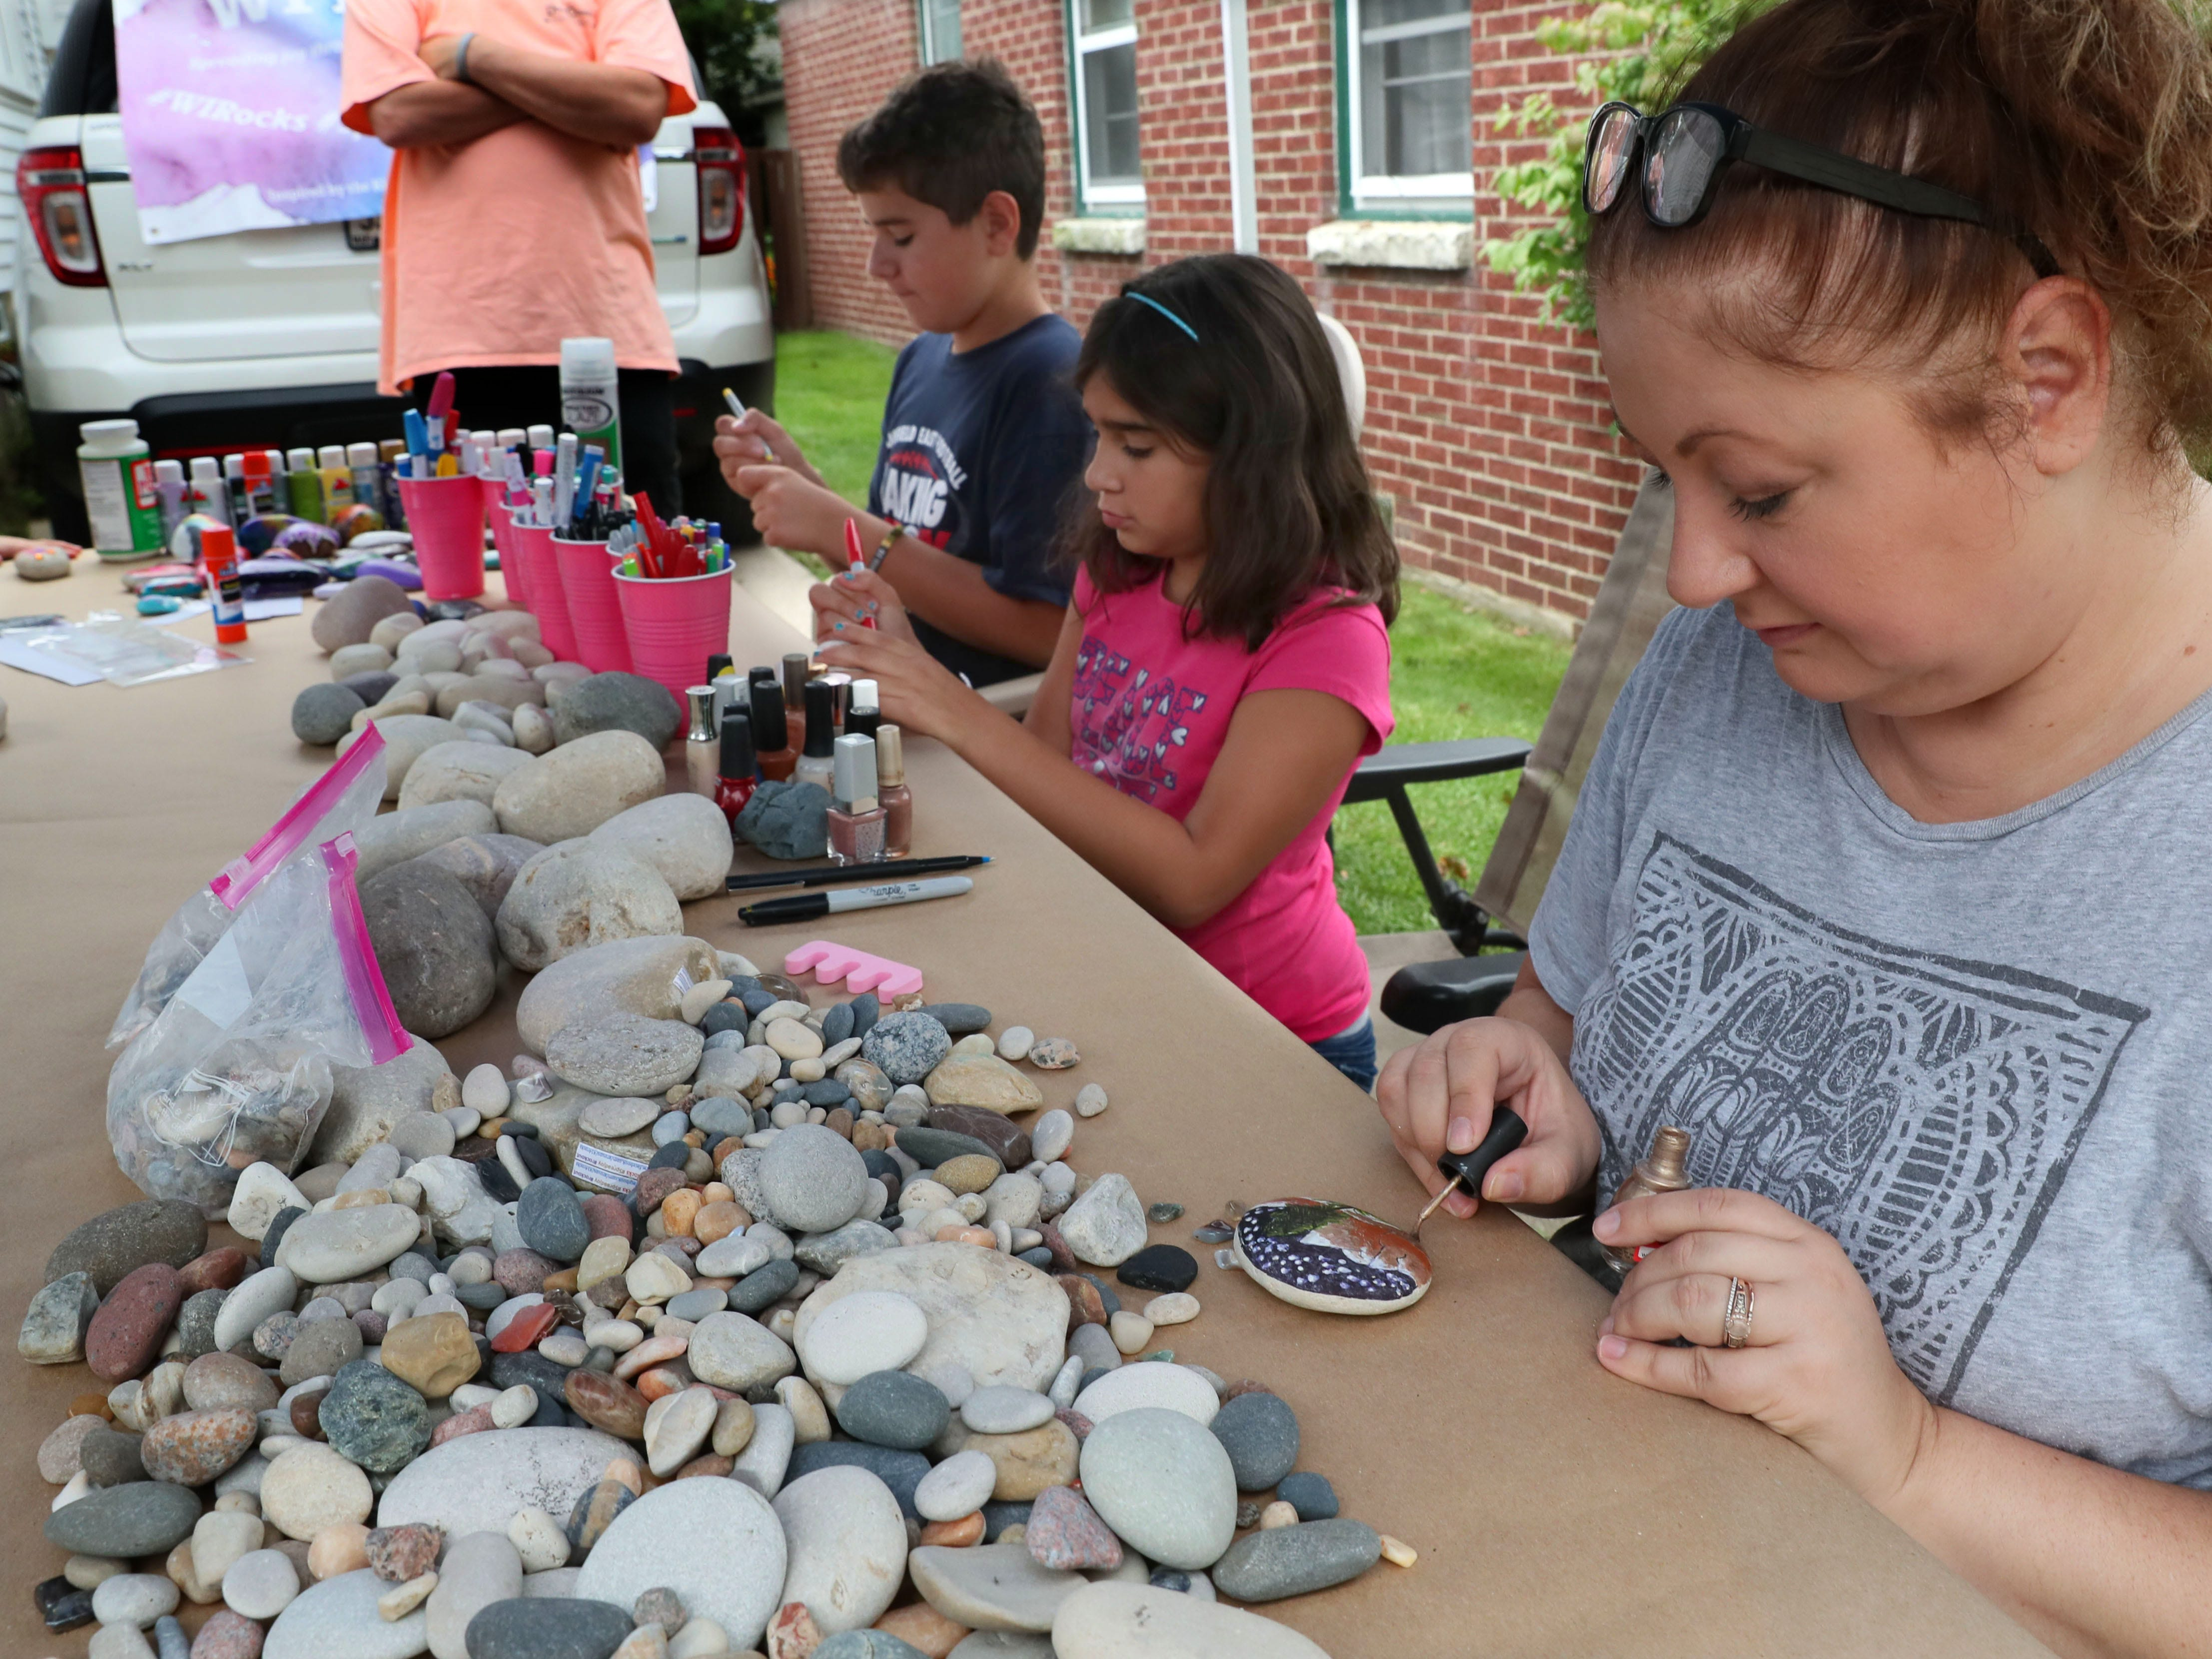 Heather Zunker (from right), Solana Zagorski and her brother, Emilio Zagorski paint rocks for WI Rocks.